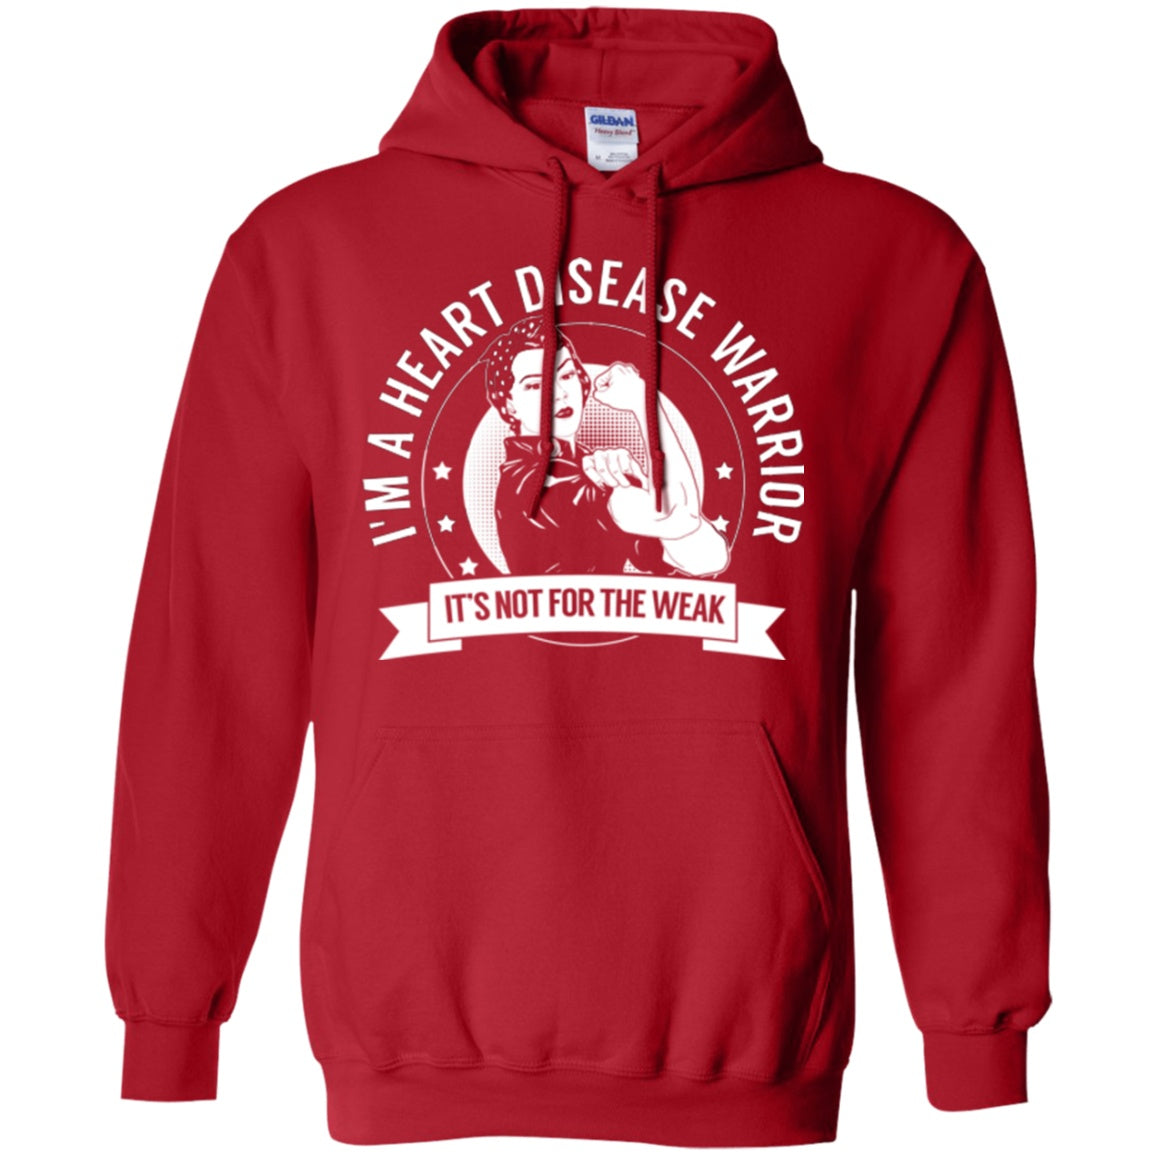 Heart Disease Warrior Not For The Weak Pullover Hoodie 8 oz. - The Unchargeables